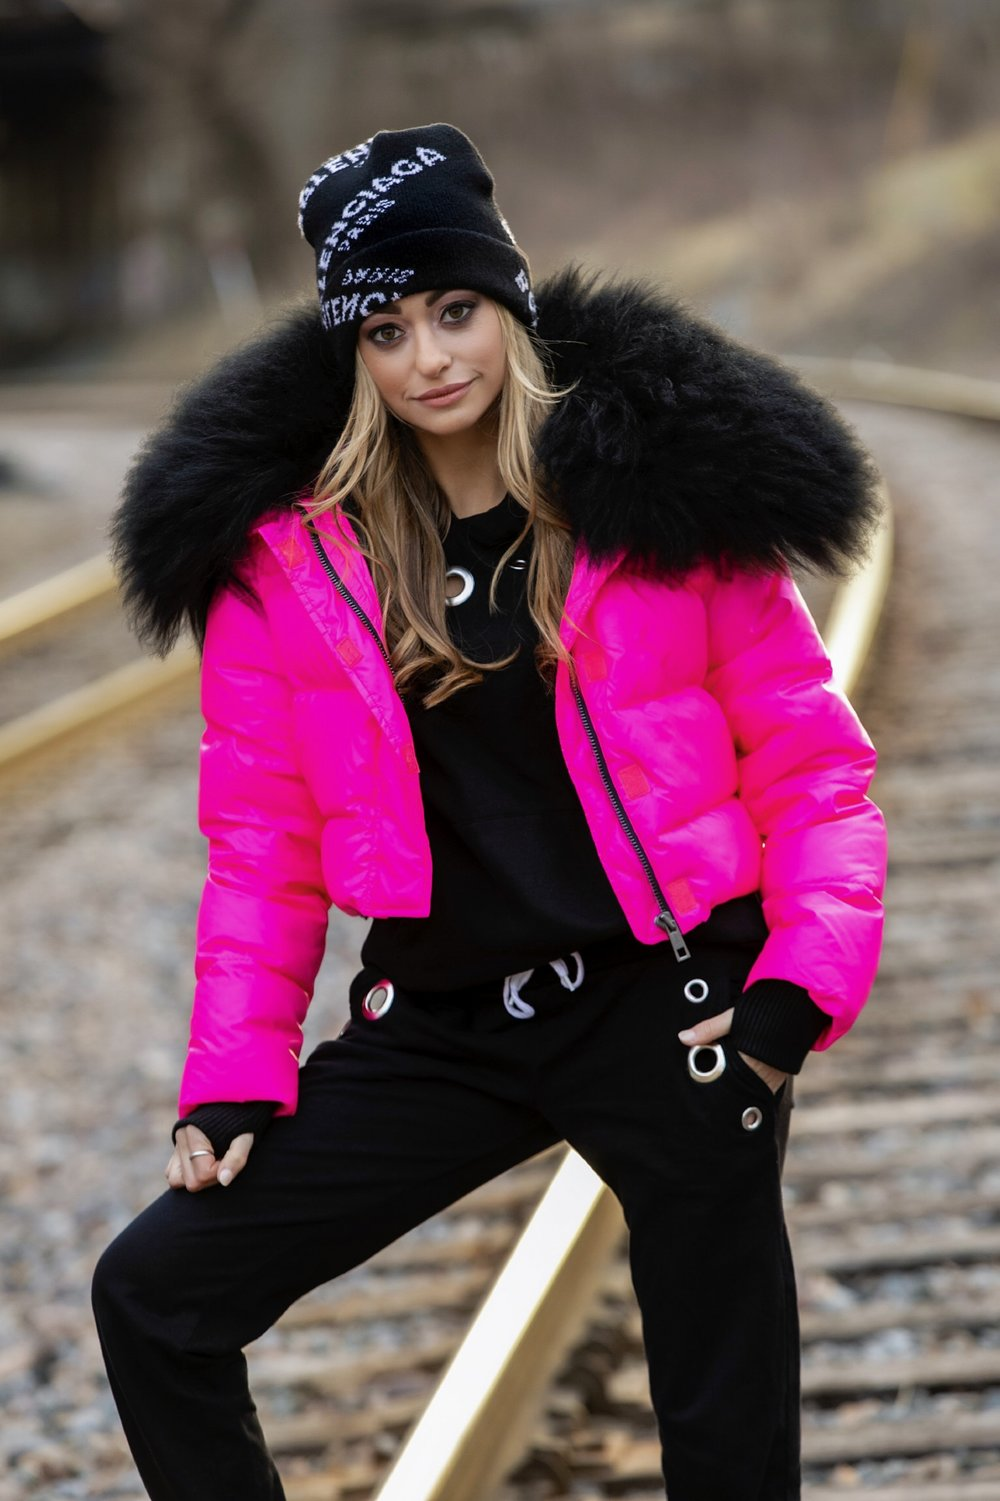 Jocelyn Fur puffer jacket